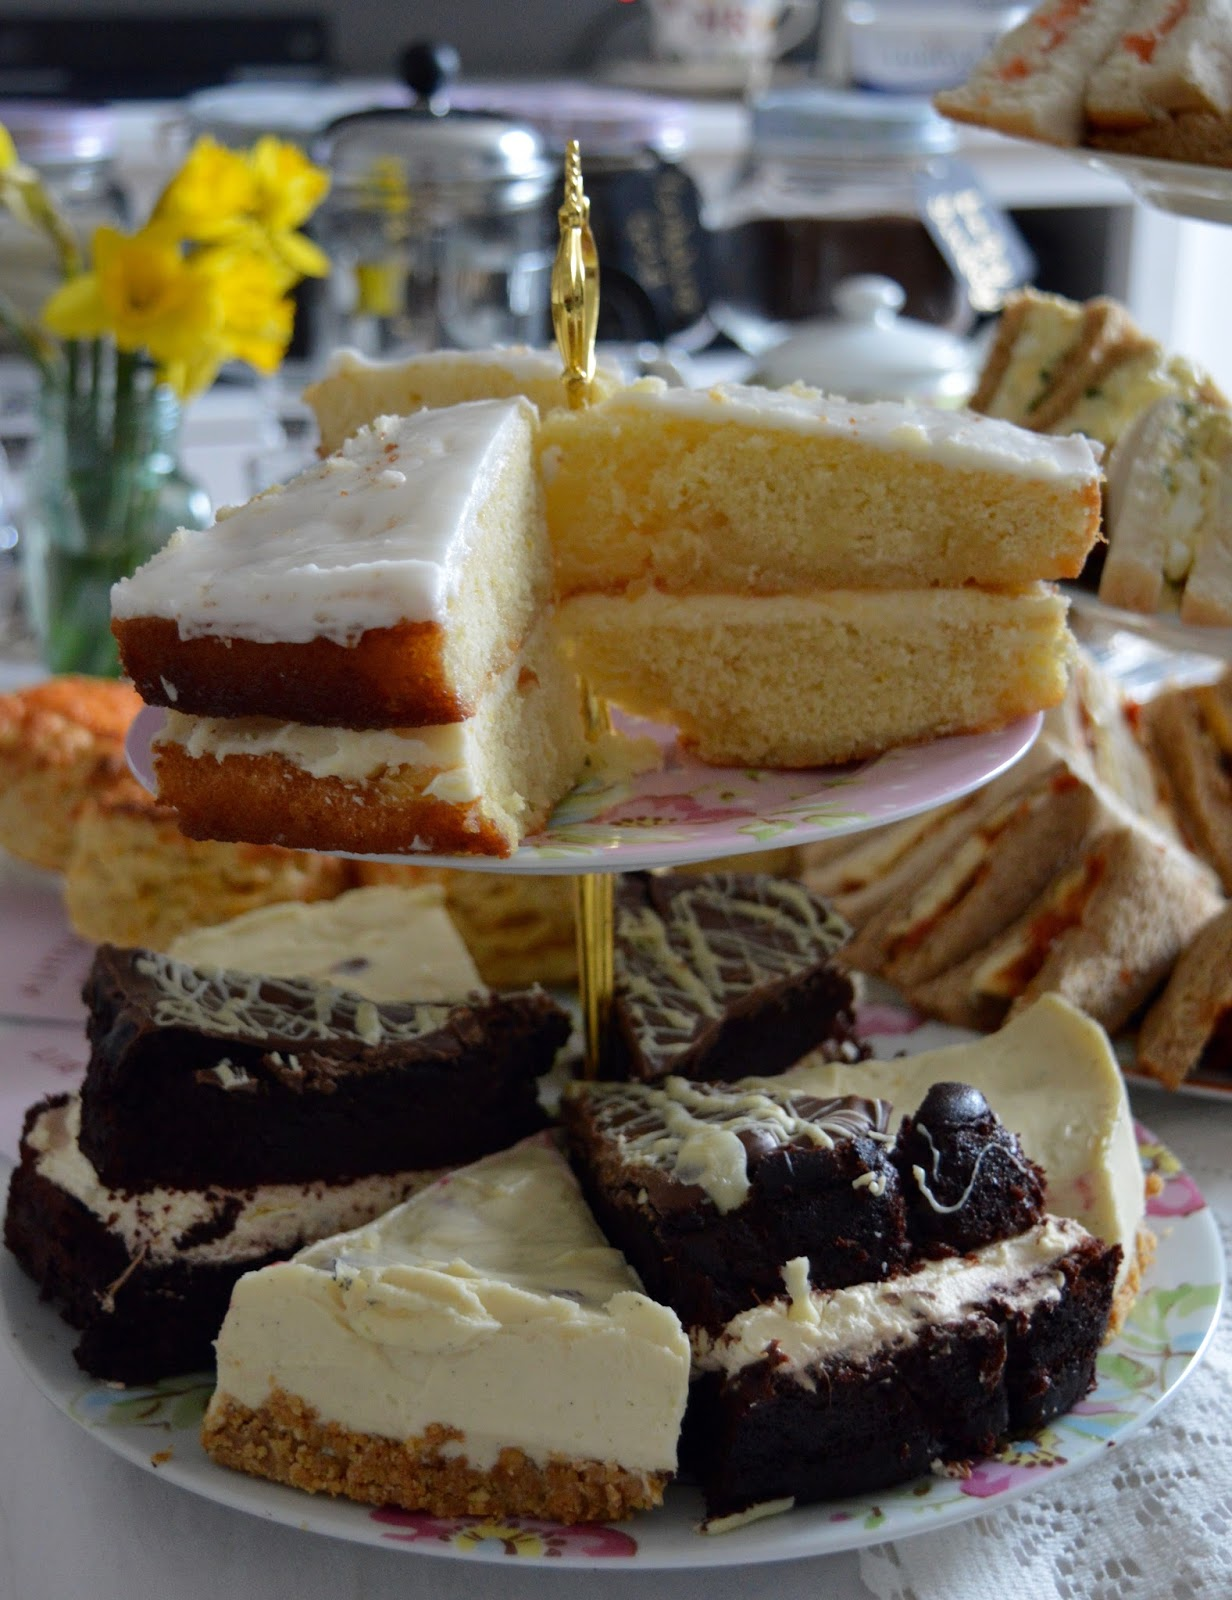 Afternoon Tea delivered in Newcastle with Mrs Dellows Delights - homemade cake stand